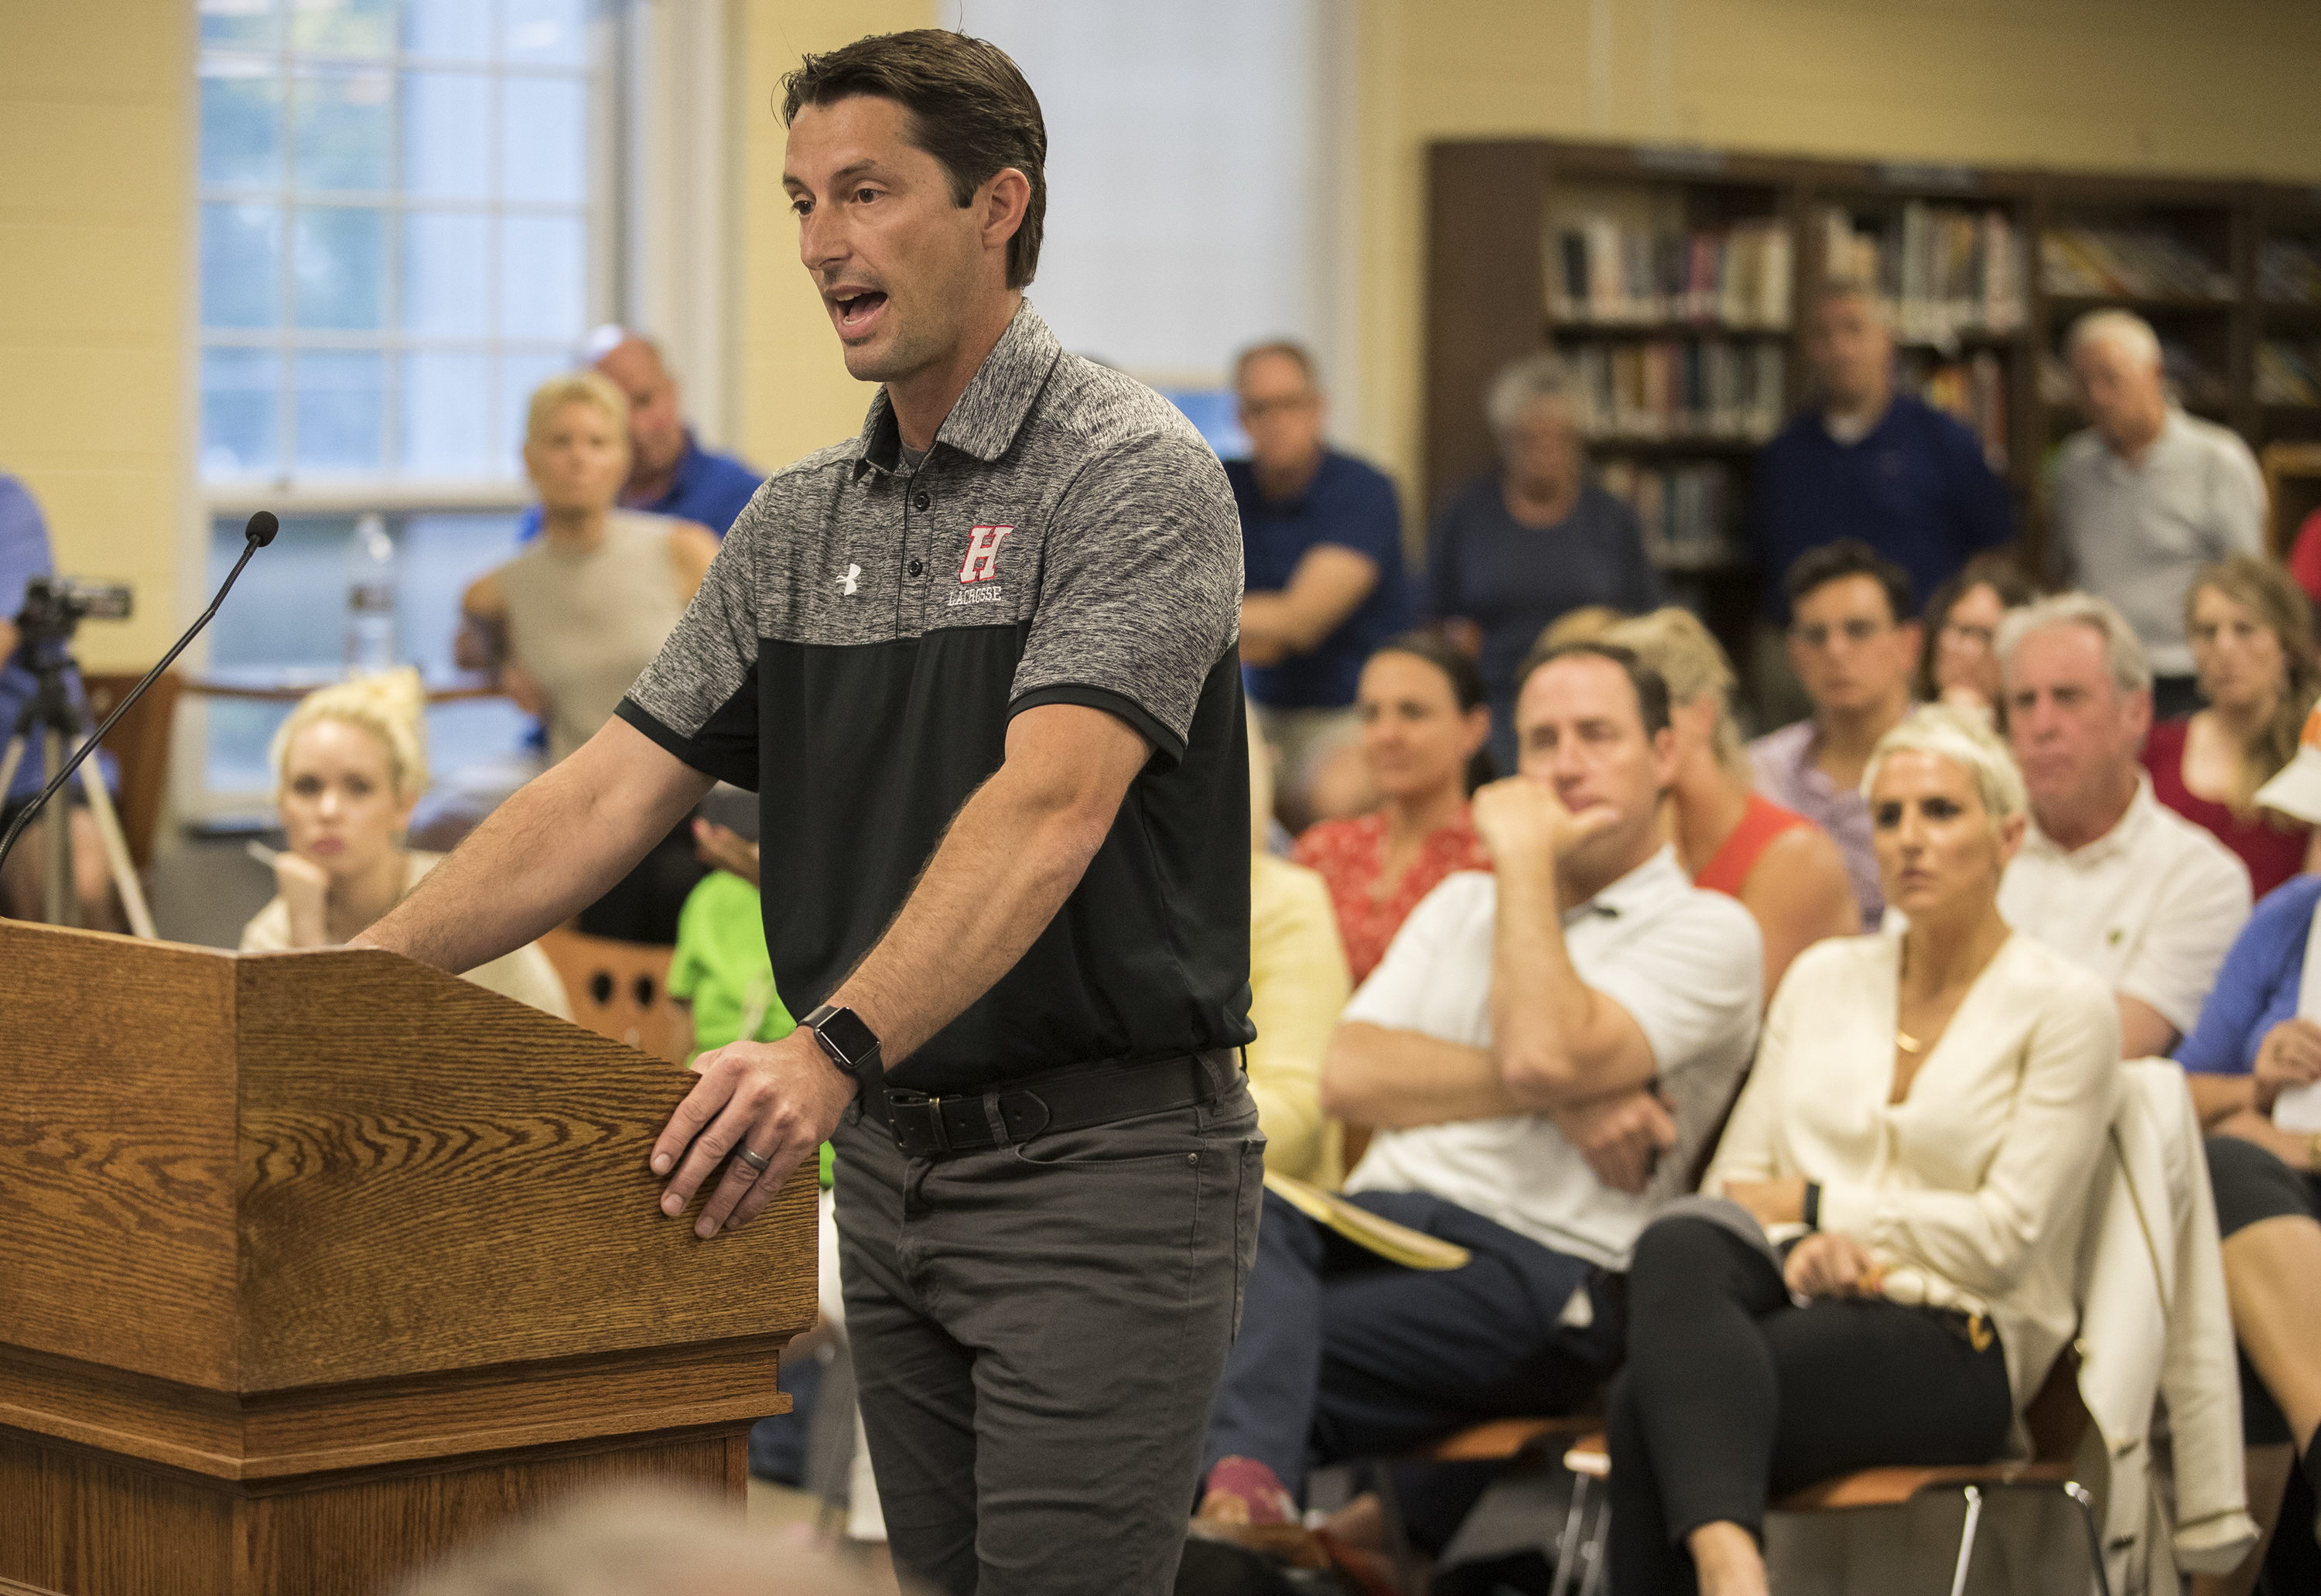 Haddonfield School Board held its monthly meeting with one of the topics being the decision to cancel the boys´ lacrosse team season after a member was accused of using a racial slur against a black female athlete from another school. Boys Head Lacrosse Coach Damon Legato addresses the board on May 24, 2018.